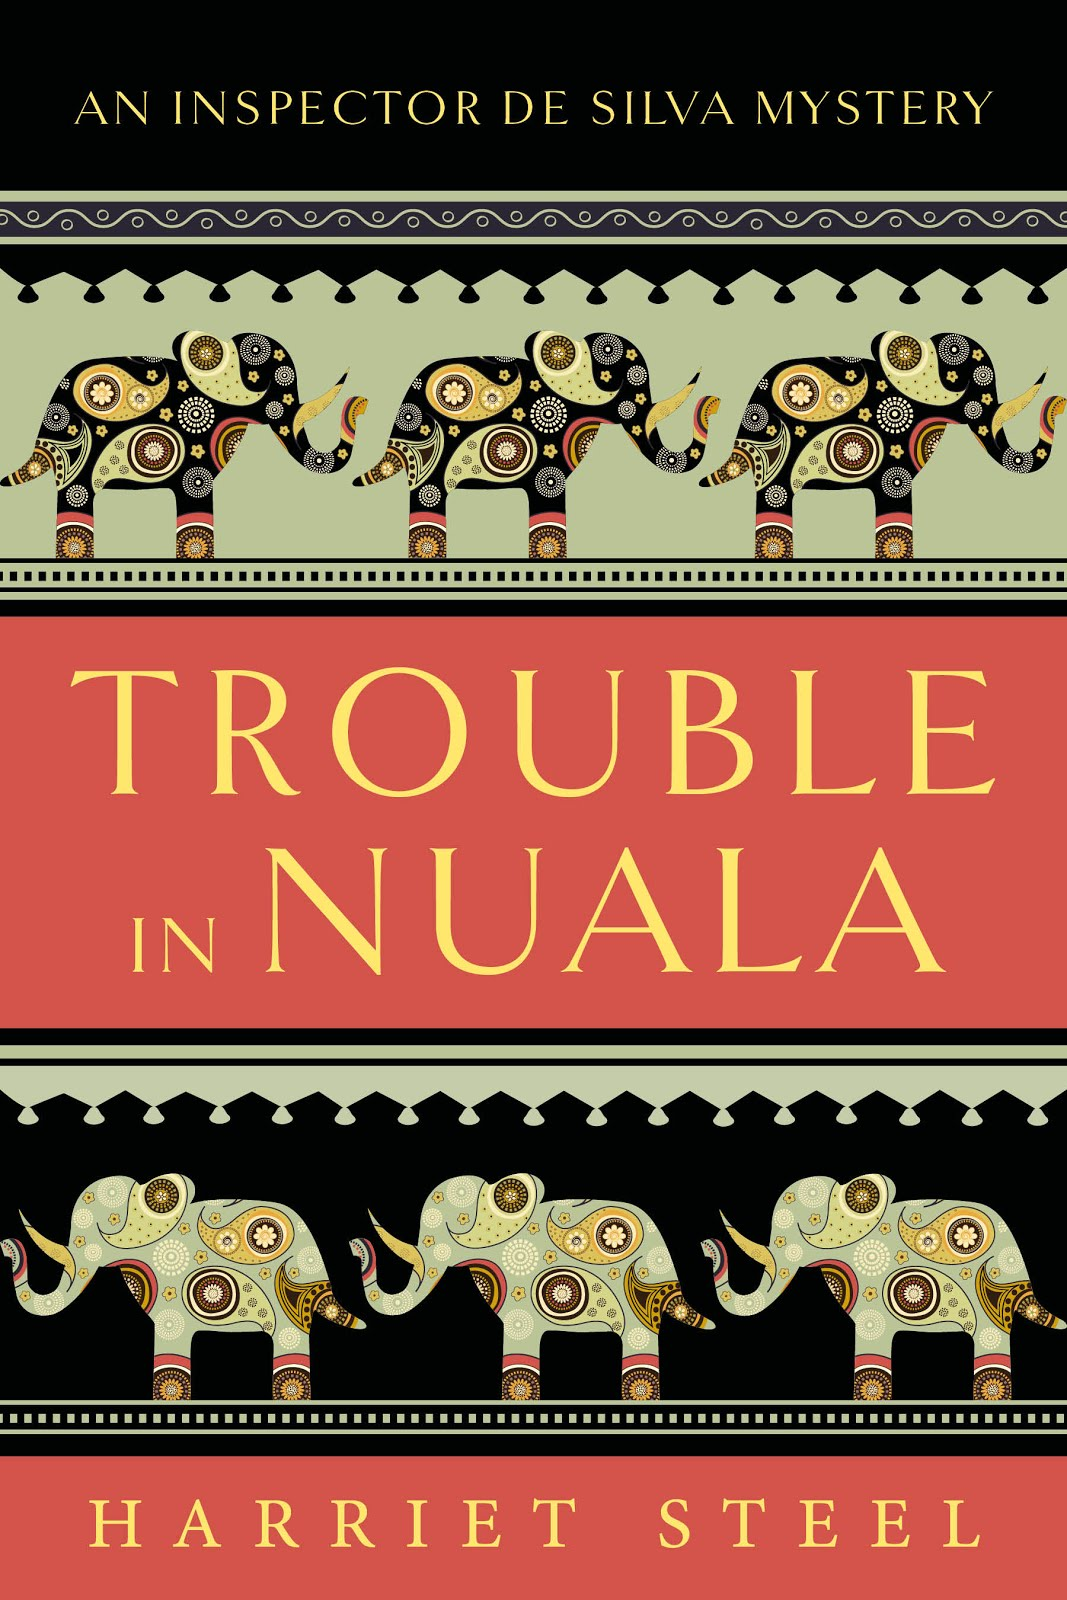 Trouble in Nuala (also on audio)